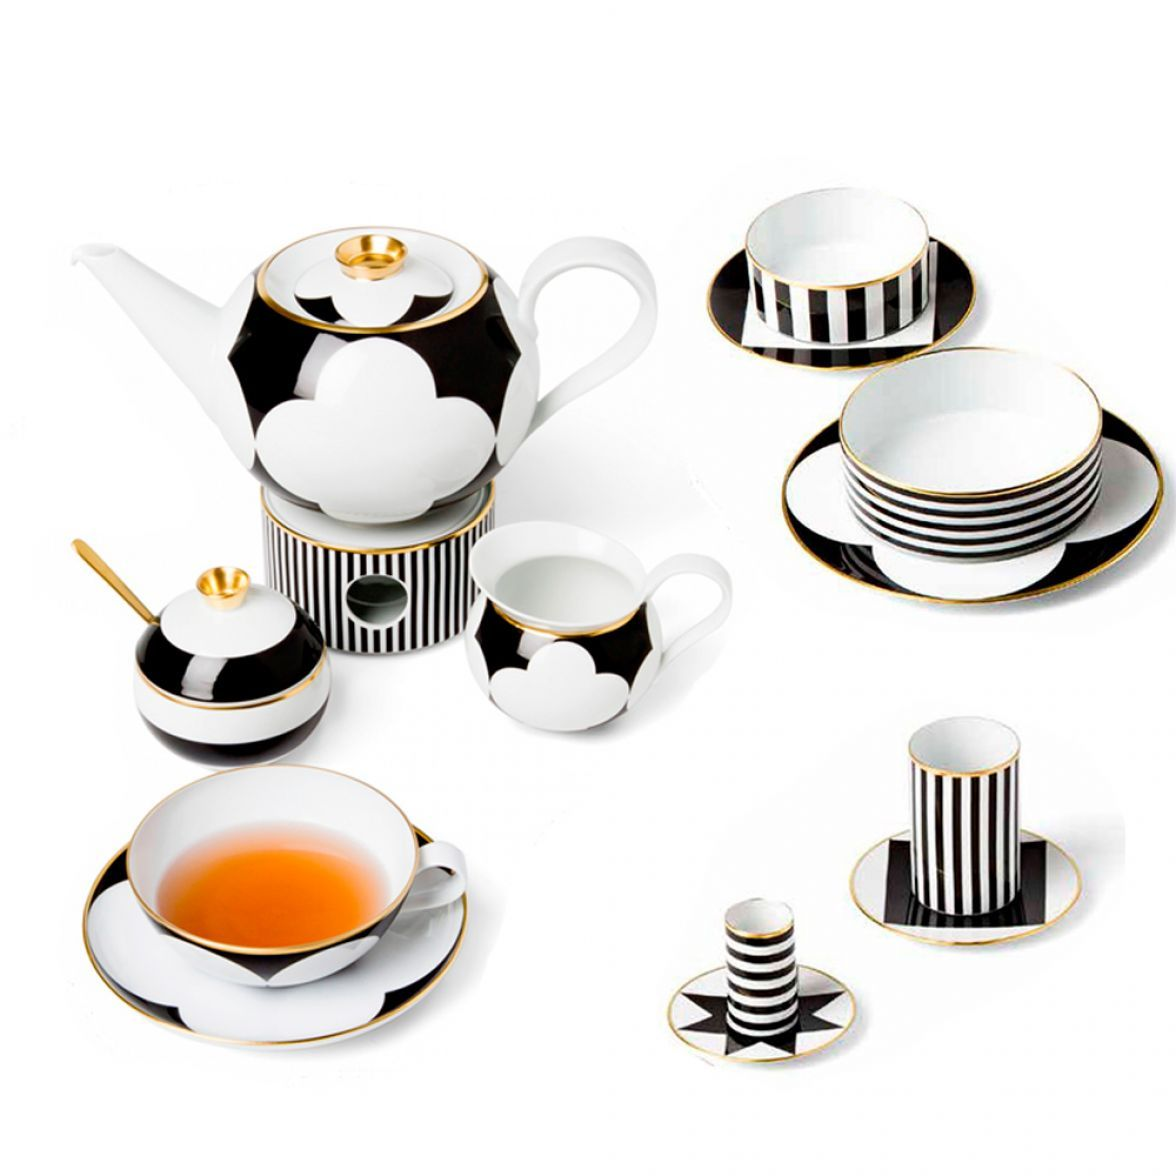 Cad'oro My China tea set фото цена